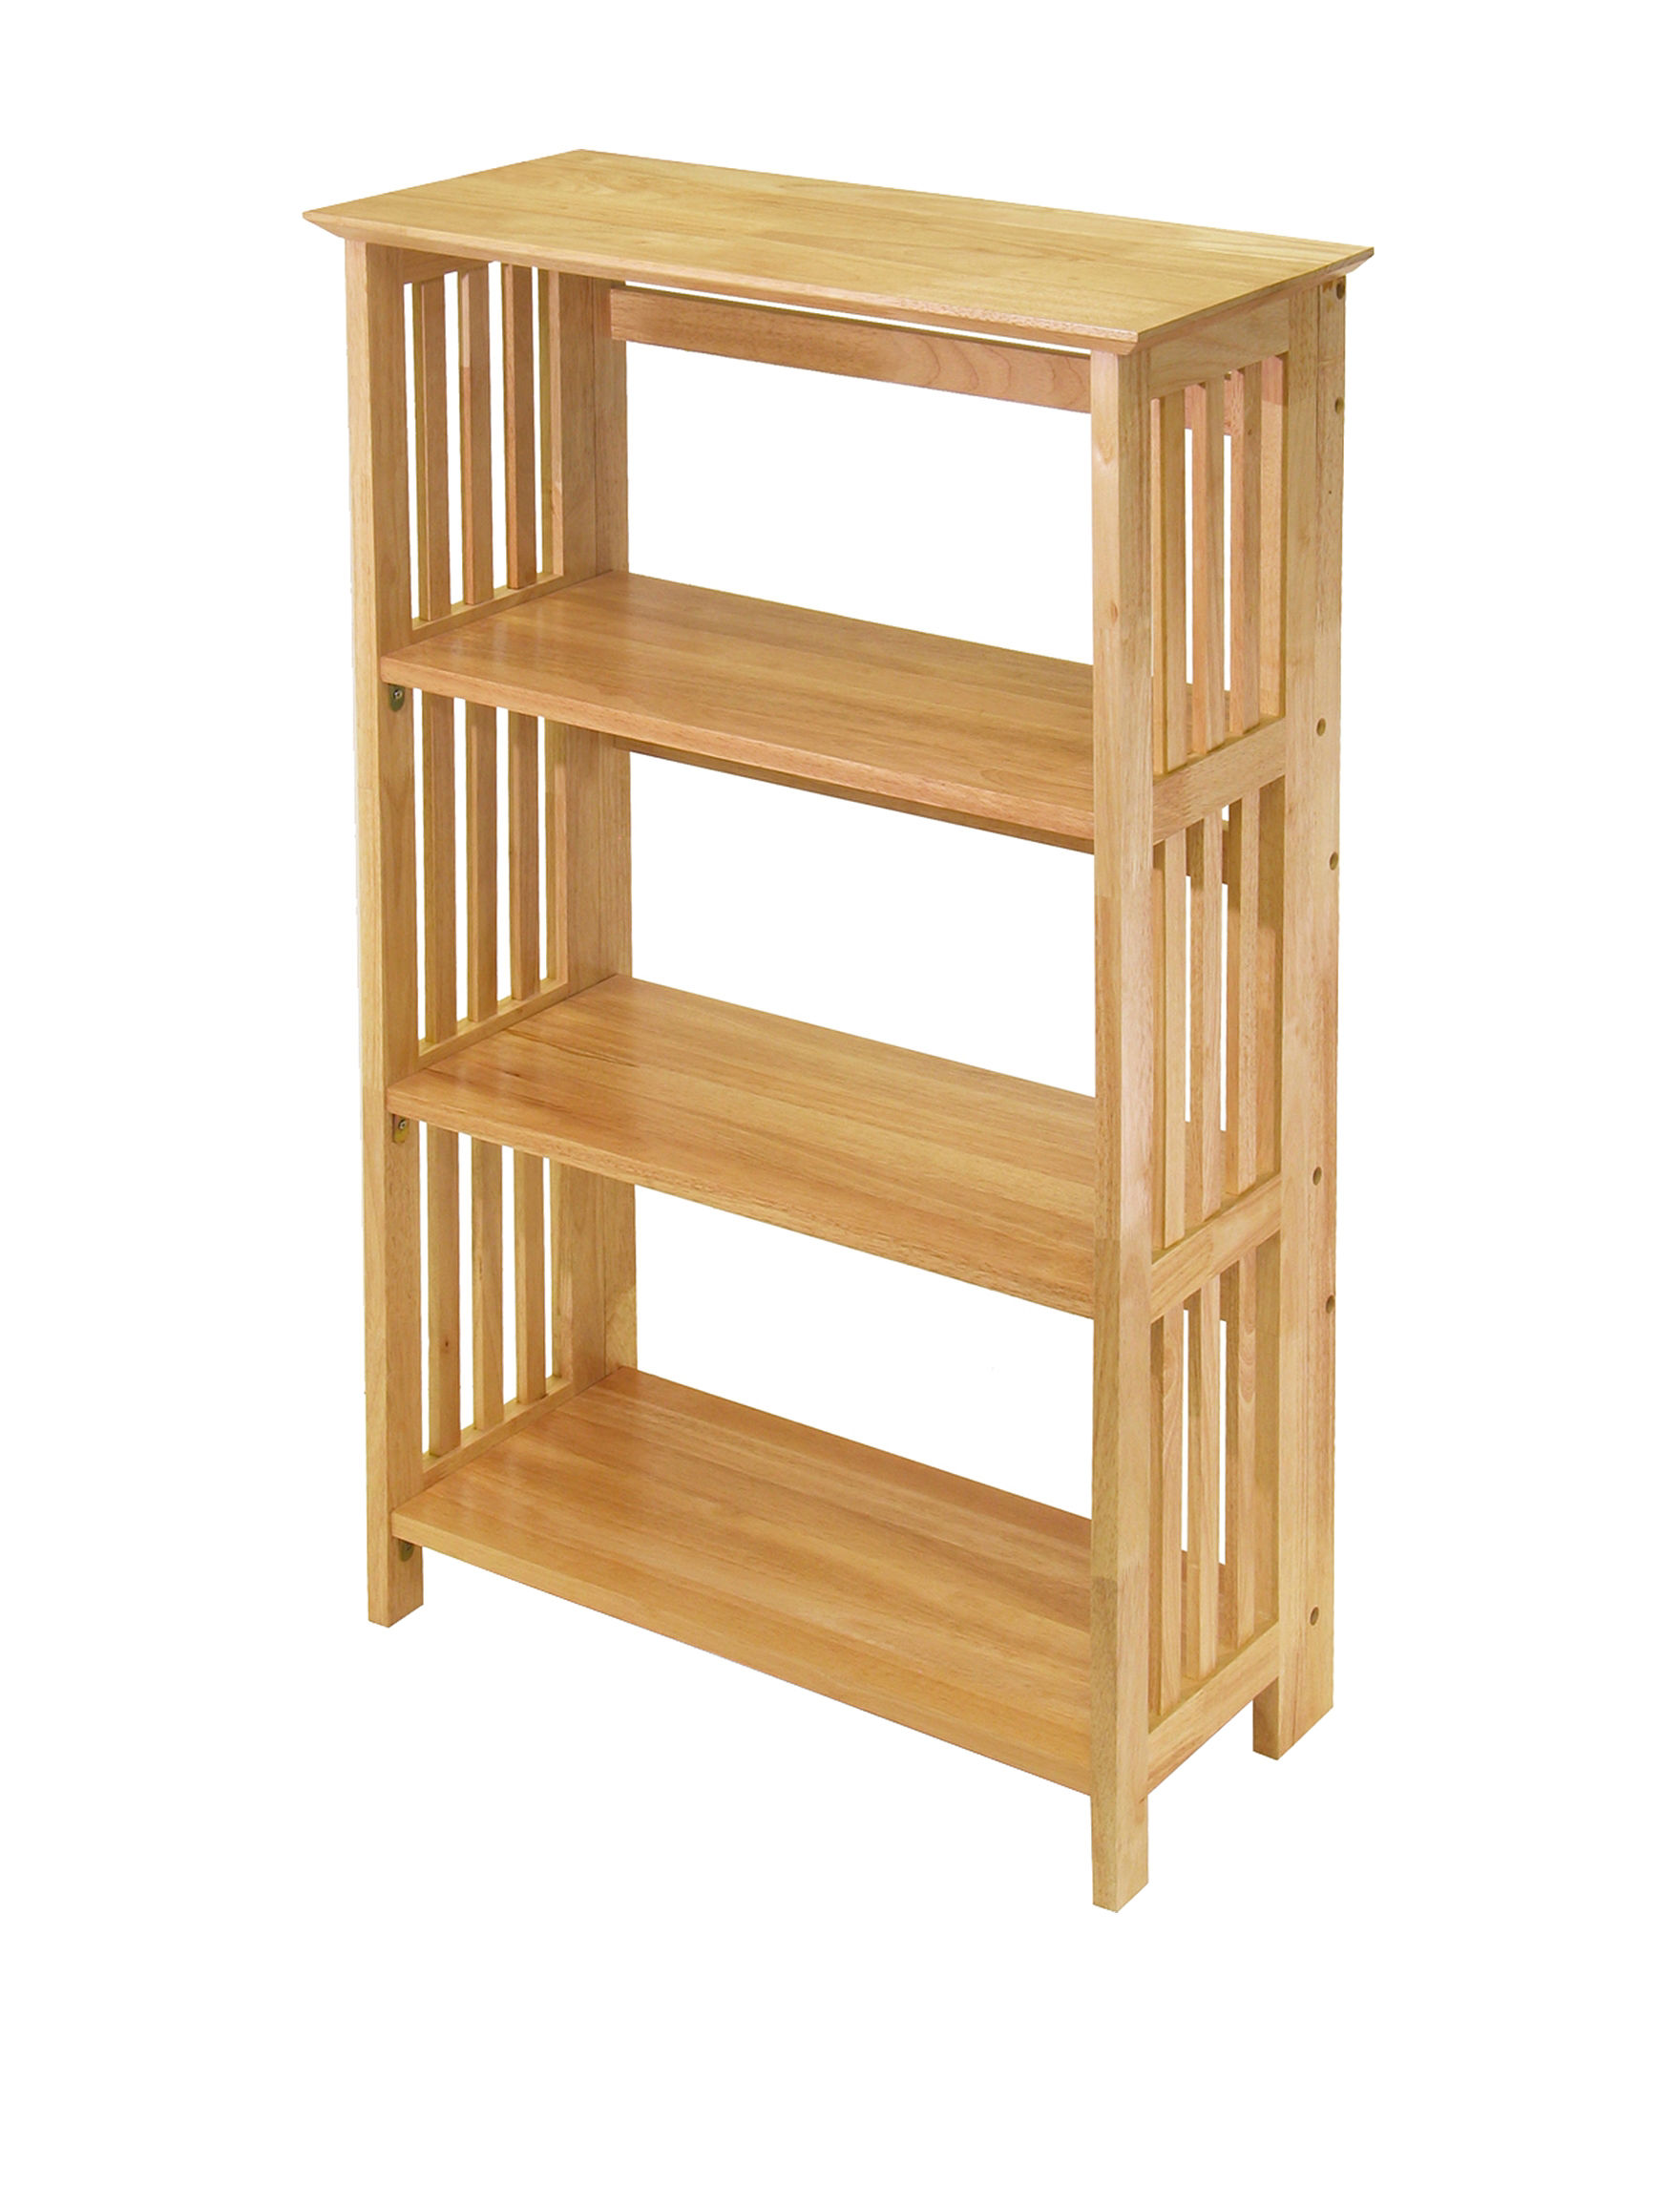 Winsome Tan Bookcases & Shelves Storage Shelves Living Room Furniture